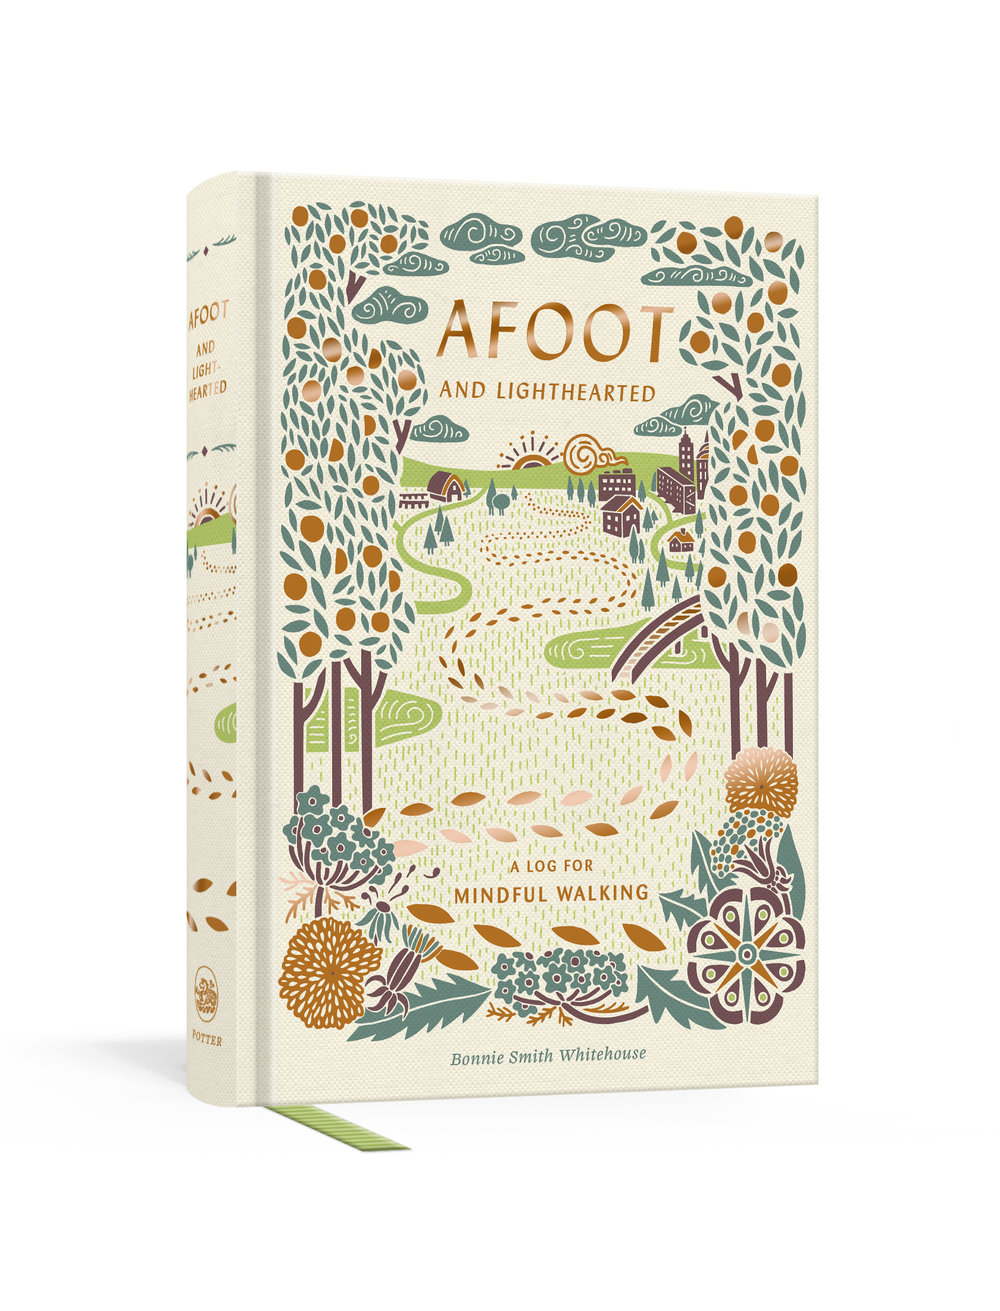 A guided journal for people seeking new ways to unplug, get active, inspire creativity, cultivate mindfulness, and improve well-being. - Afoot and Lighthearted is the first interactive journal of its kind for walkers who want to expand their physical and creative worlds through acts of mindfulness. Afoot and Lighthearted will teach readers how to harness the power of walking to cultivate and nourish attention, inspiration, and determination, as well as to combat distraction, anxiety, and the dreaded creative block. Organized around thematic prompts designed to help makers take a break from digital life and tap into the transformational magic of creative journaling, Afoot and Lighthearted introduces us to innovative walkers throughout literature, art, philosophy, and history, and it offers encouragement in the form of inspirational quotes. Supported by light illustrations and evidence from recent research on the compelling connection between walking and well-being, Afoot and Lighthearted offers a fresh perspective every step of the way, much like a walk itself.Pick up a copy today at your favorite independent bookstore! Mine happens to be Parnassus Books in Nashville, Tennessee.Afoot and Lighthearted is also available at Amazon, Barnes and Noble, Target, and Walmart.